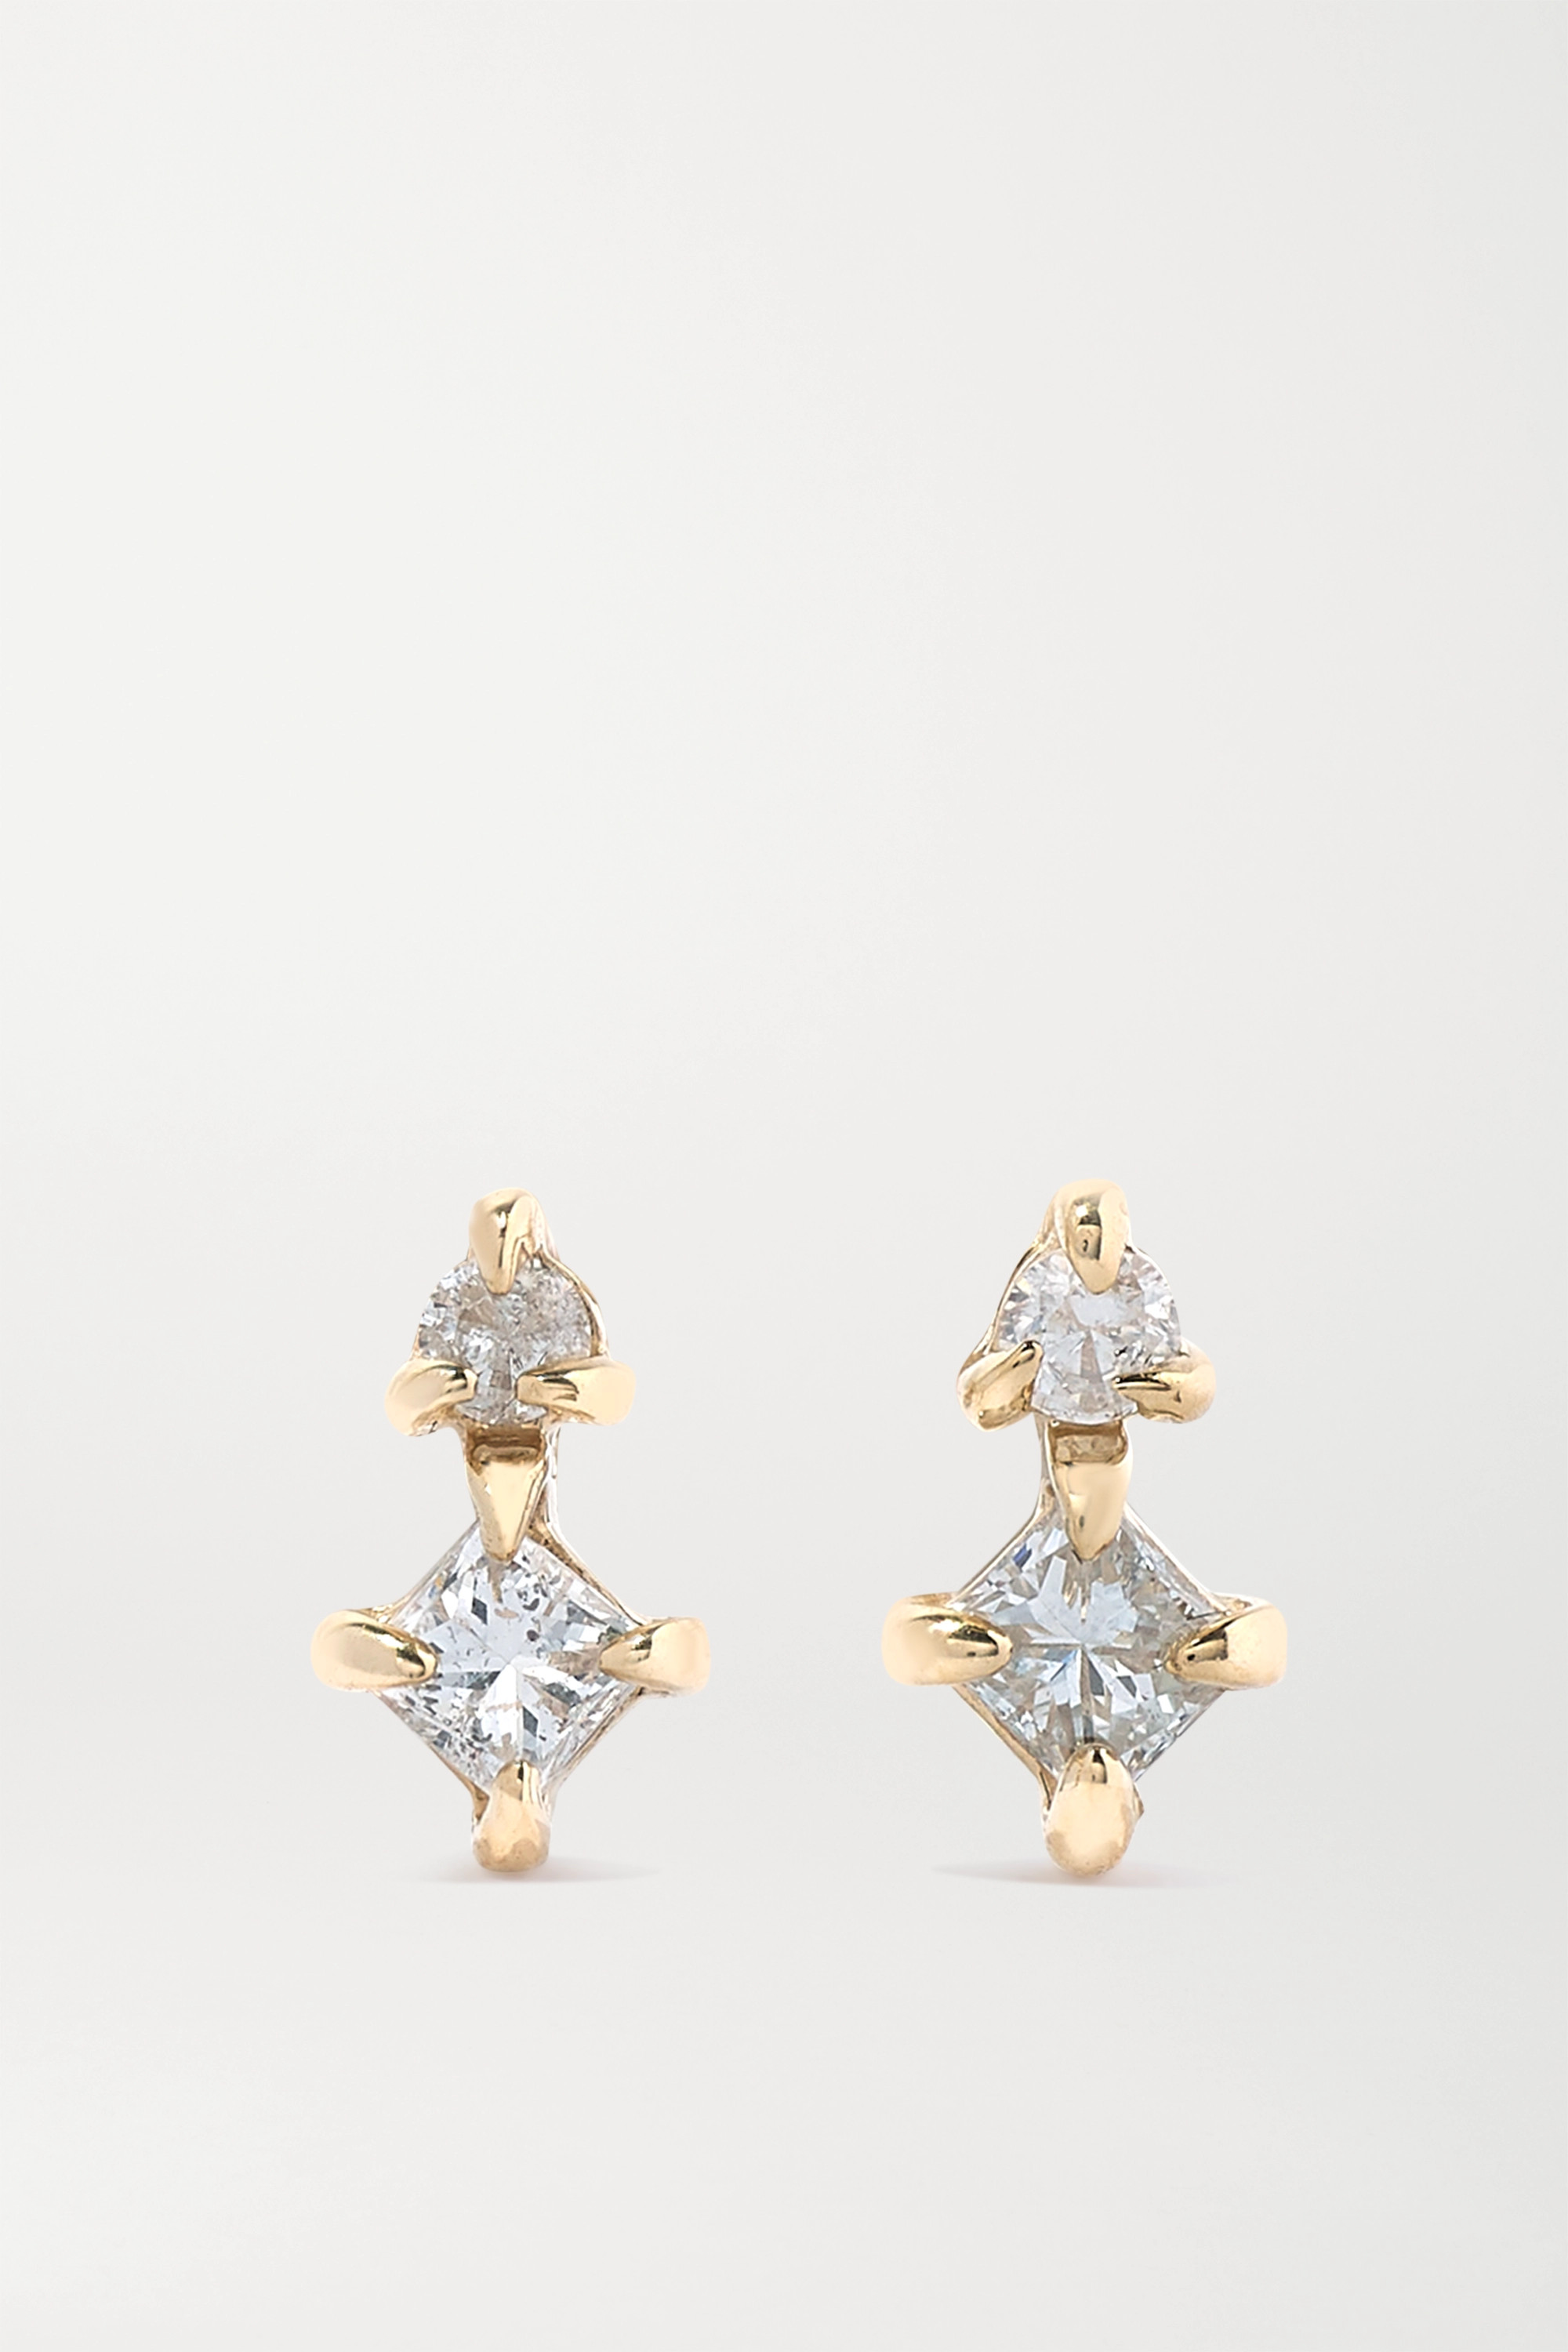 STONE AND STRAND Gold diamond earrings